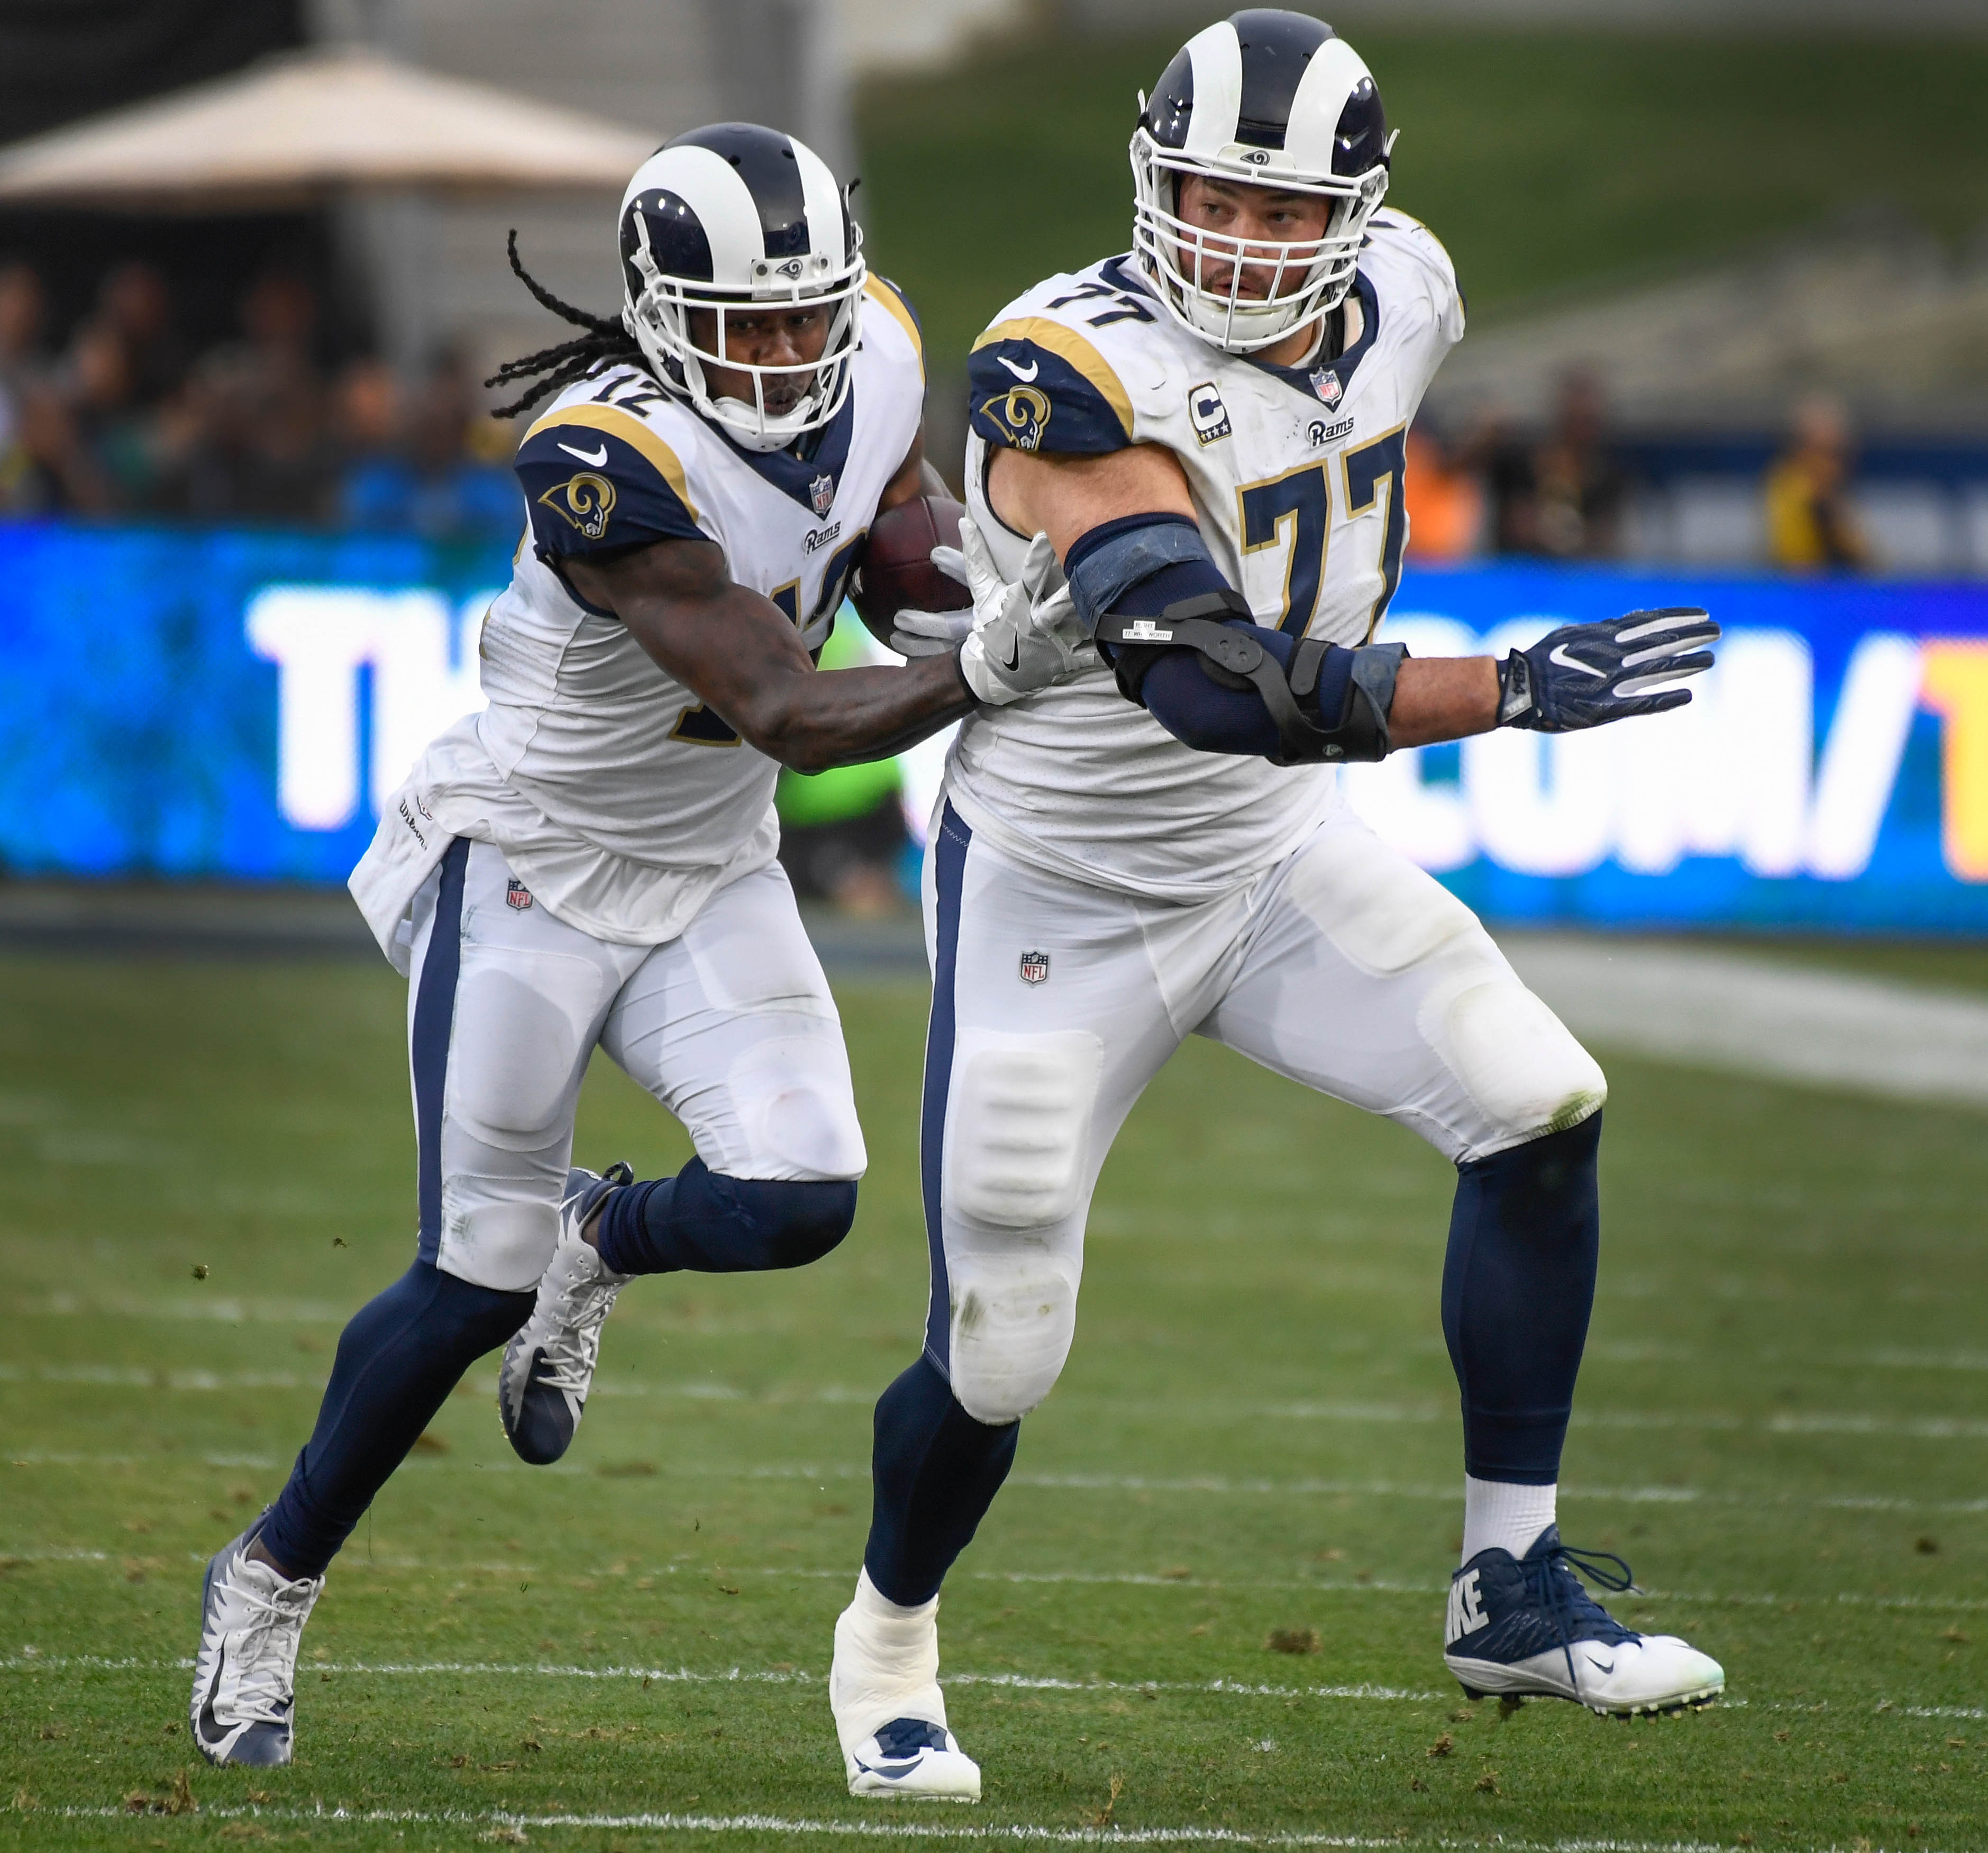 Los Angeles Rams LT Andrew Whitworth leads the way for WR Sammy Watkins